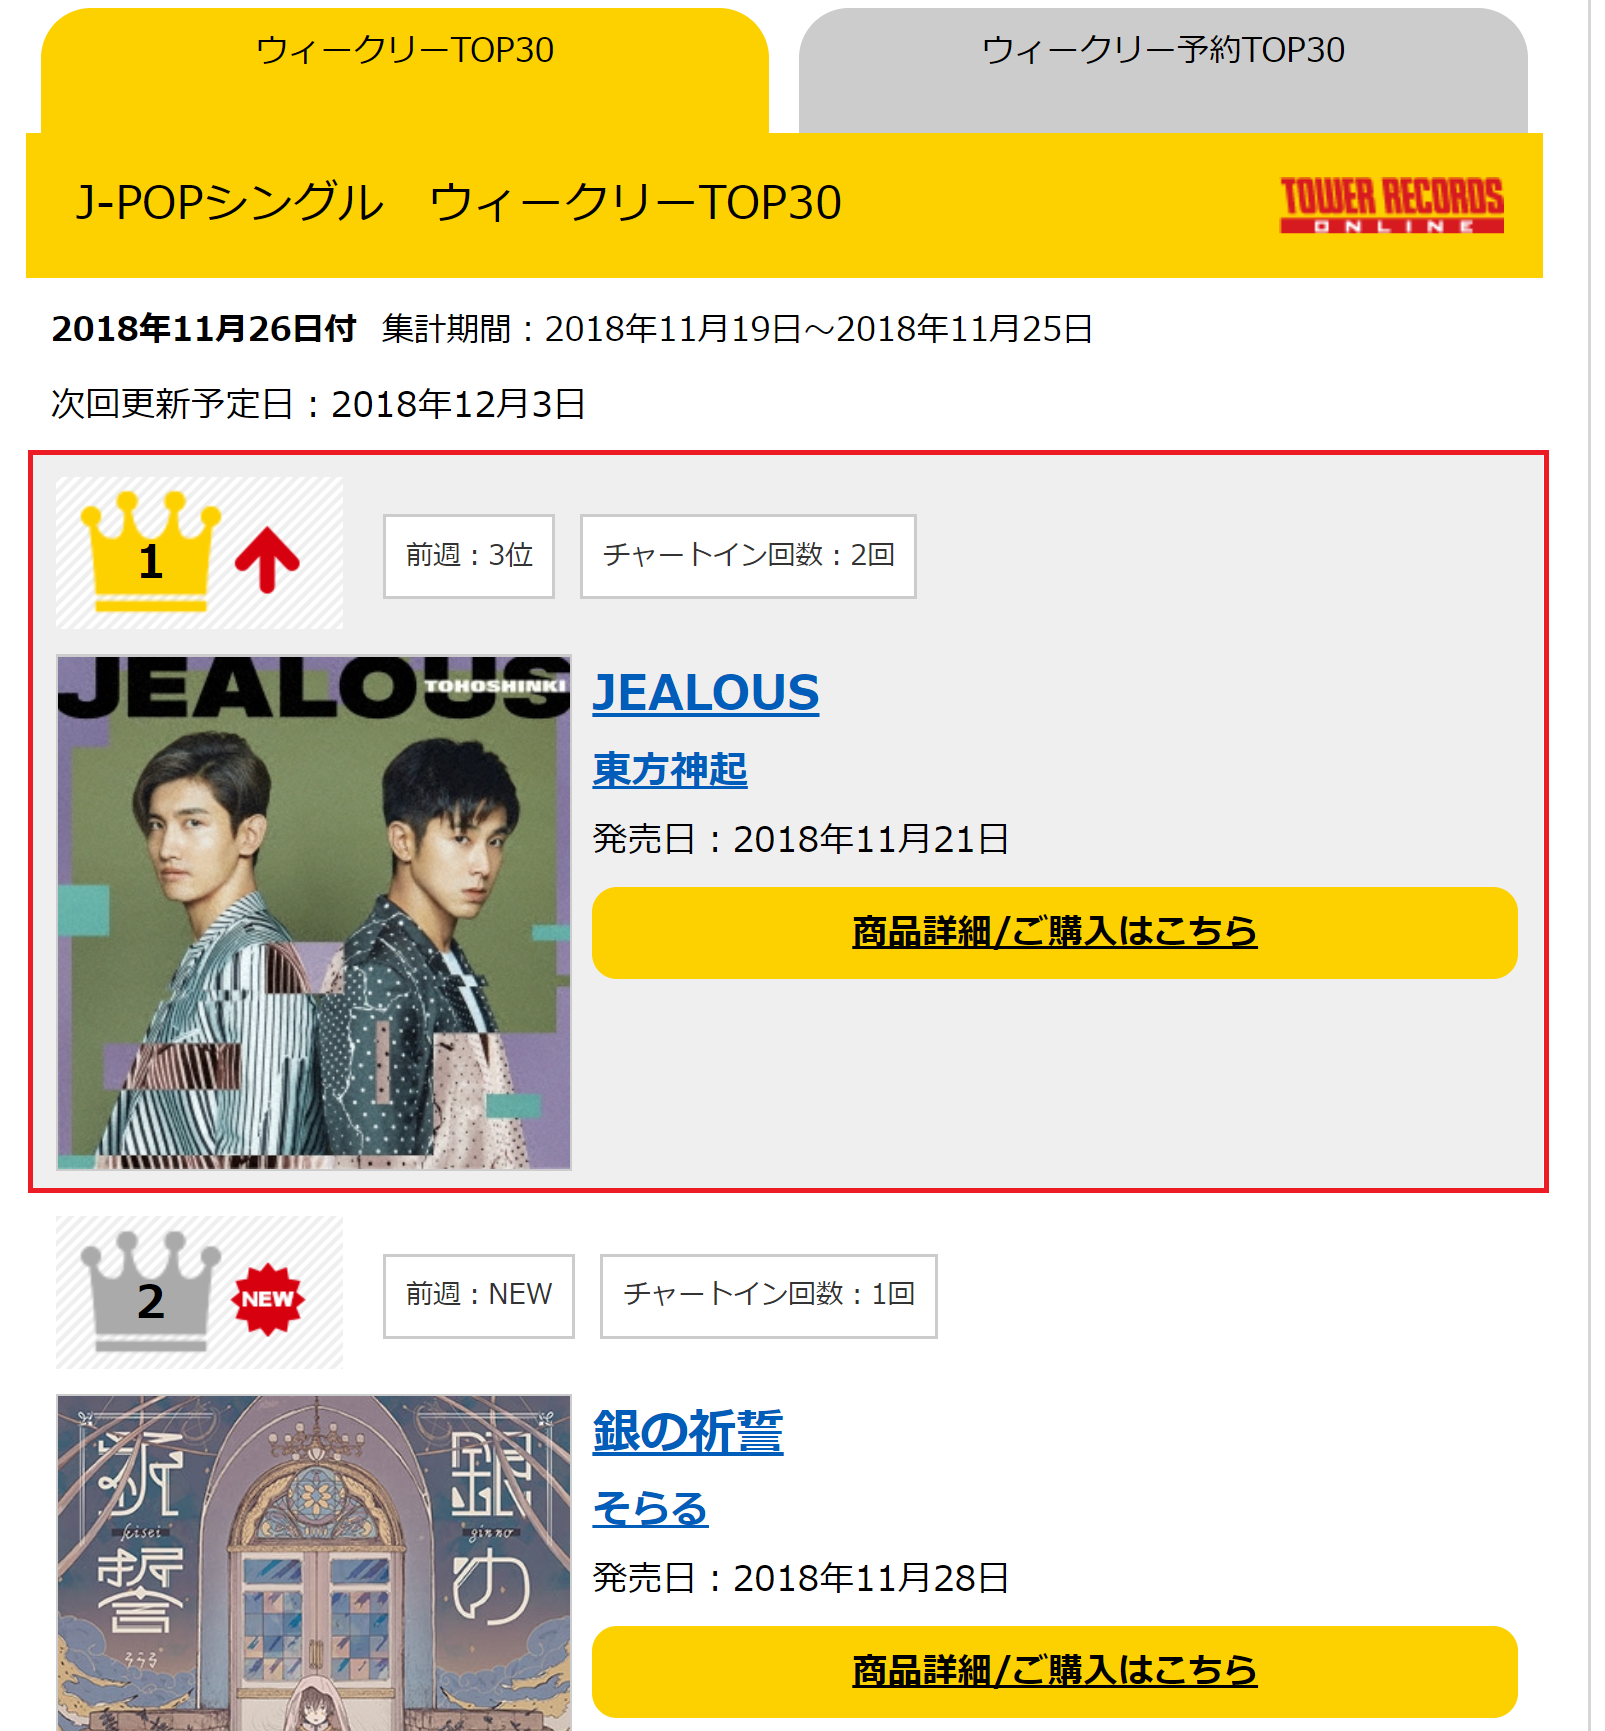 INFO] 181126 #東方神起 #Jealous Tops Tower Records Stores J